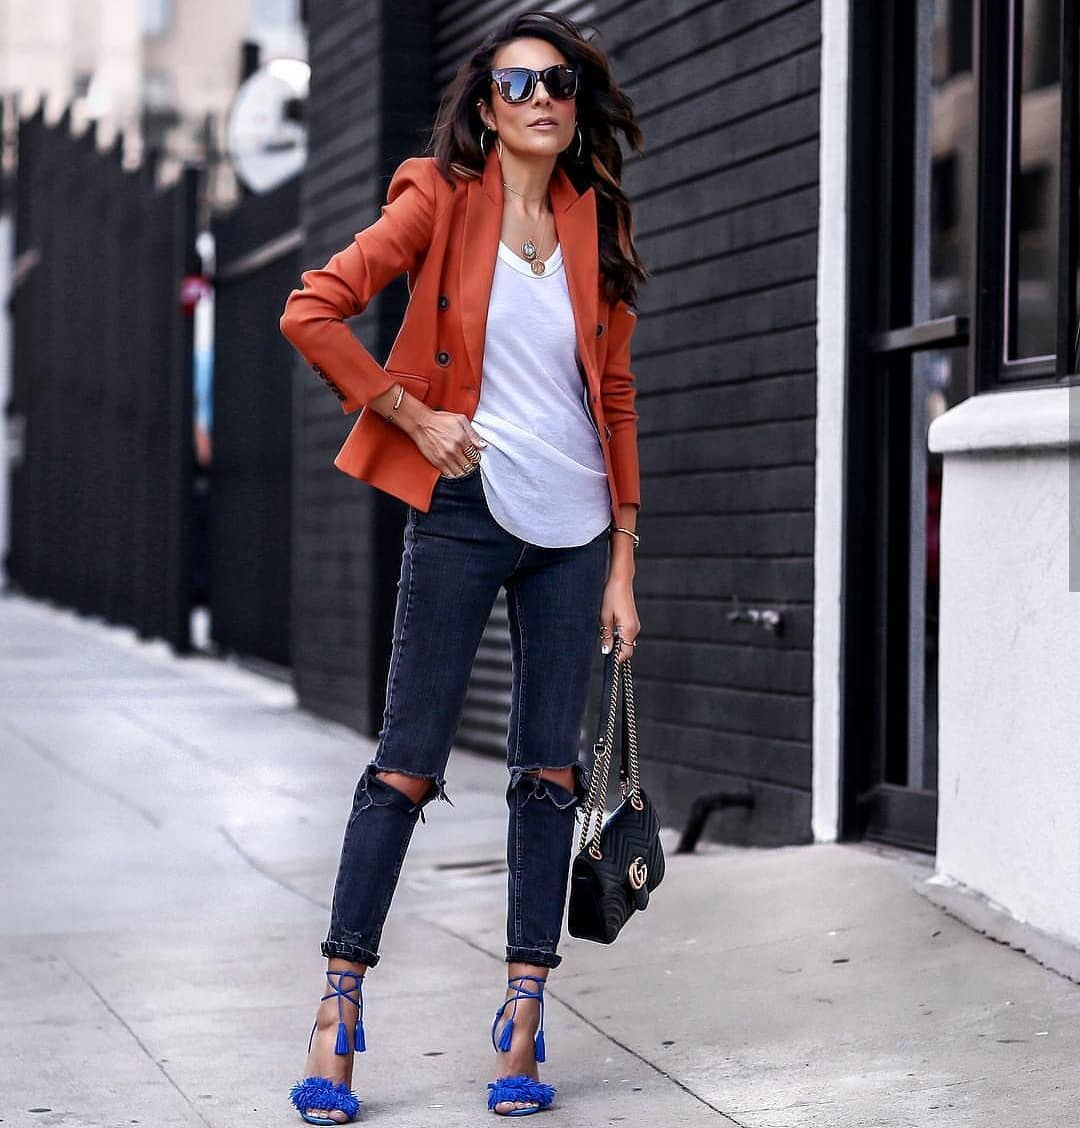 How To Wear Burnt Orange Blazer This Spring 2021